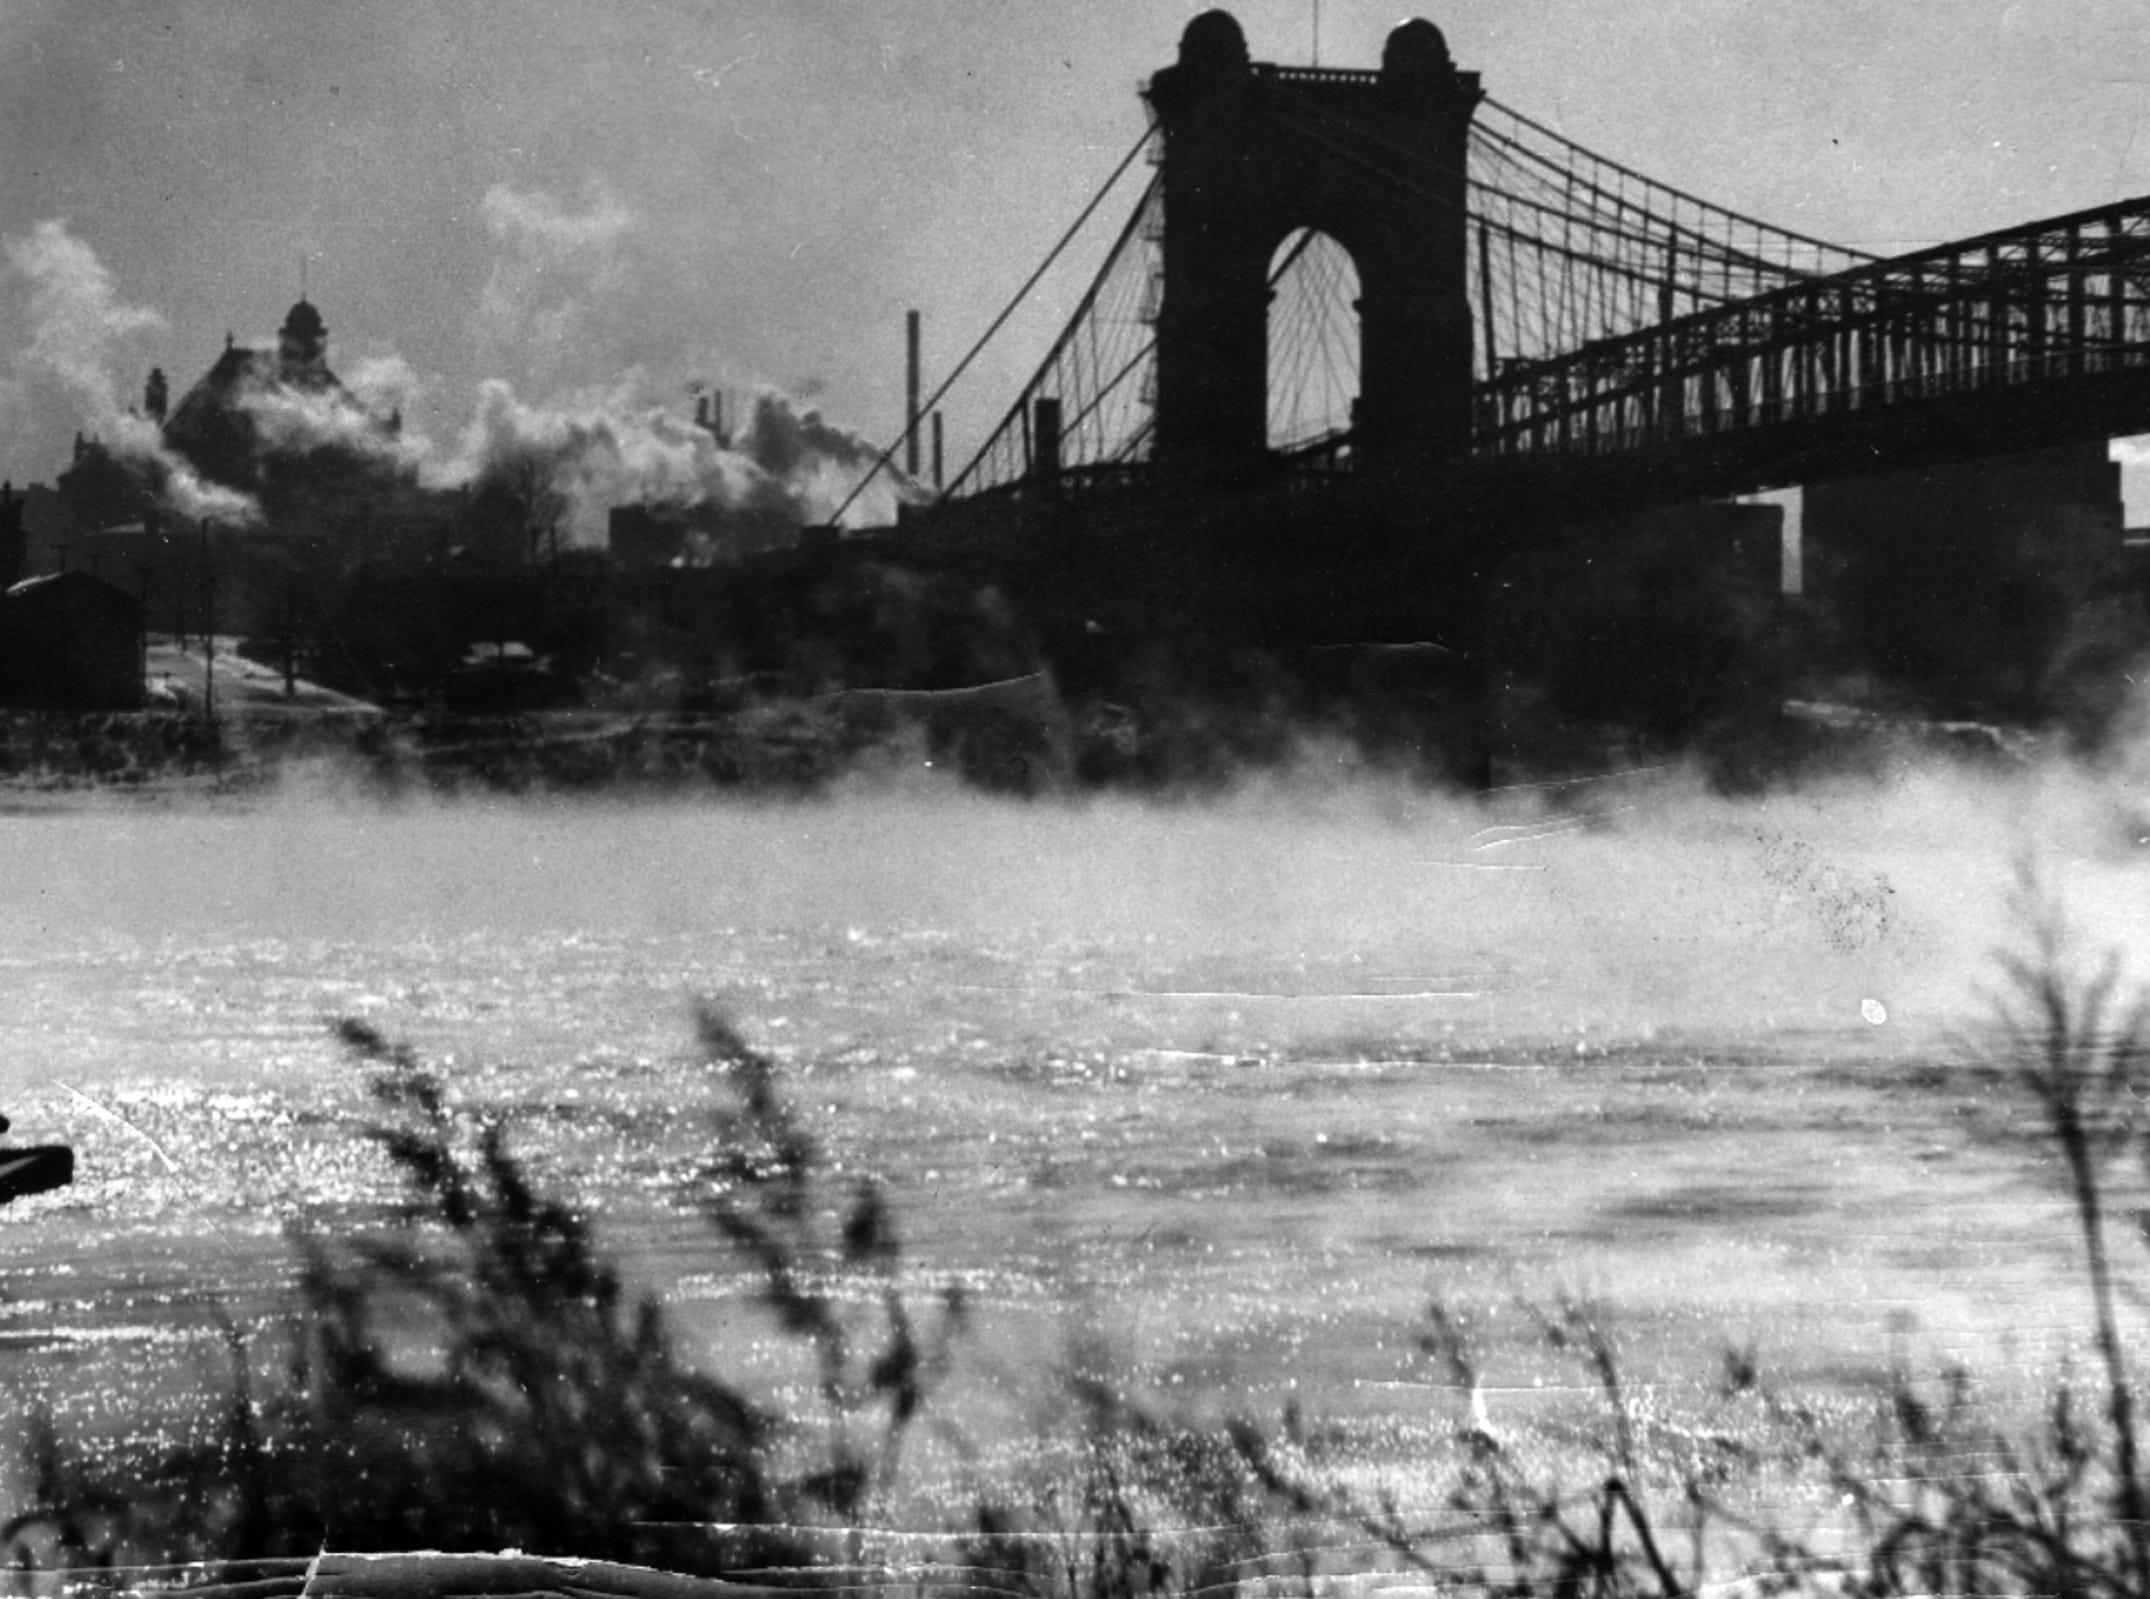 """JANUARY 3, 1975: Still Hanging In There: Like an old, old porch in need of a new floor, the Suspension Bridge connecting downtown Cincinnati and Covington also is worn from much, much traffic. The Kentucky Bureau of Highways will let a contract January 23, 1975 to replace about half the steel grid deck of the bridge, with a completion date of August 1, 1976, and at least one lane to remain open to traffic at all times, tow lanes during peak traffic hours, Countless feet and tires have moved across the structure since The Enquirer on December 2, 1866, noted: """"Yesterday, the greatest work in the country, the Covington and Cincinnati Suspension Bridge was thrown open to the public."""" Headlines above the story said: """"40,000 Foot Passengers On it Yesterday. Freight Cart To Run It During Nighttime."""" Also mentioned was the """"stiffness and rigidity of the structure,"""" which was designed by John Augustus Roebling, who later built the Brooklyn Bridge. The 100th anniversary of the opening of the bridge was observed with proper ceremonies in 1966 at City Hall Square in Covington. Enquirer File Photo scanned December 20, 2010"""